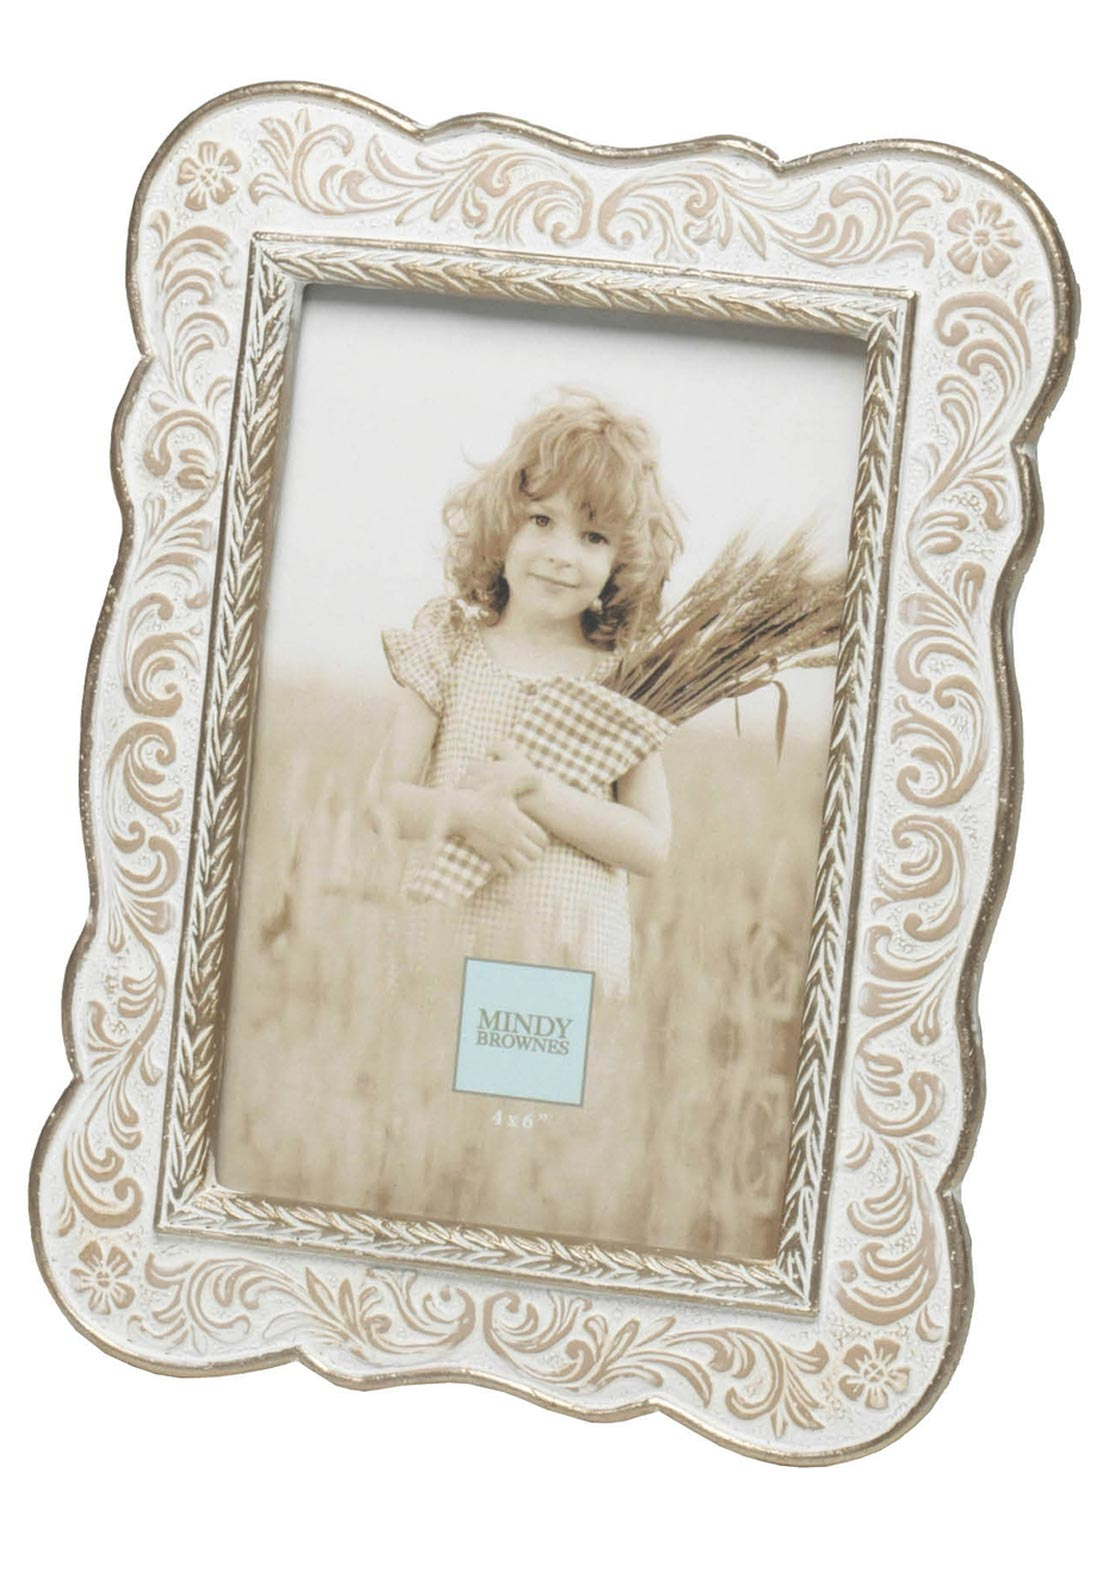 "Mindy Browne Ellie Photo Frame, 4"" X 6"""